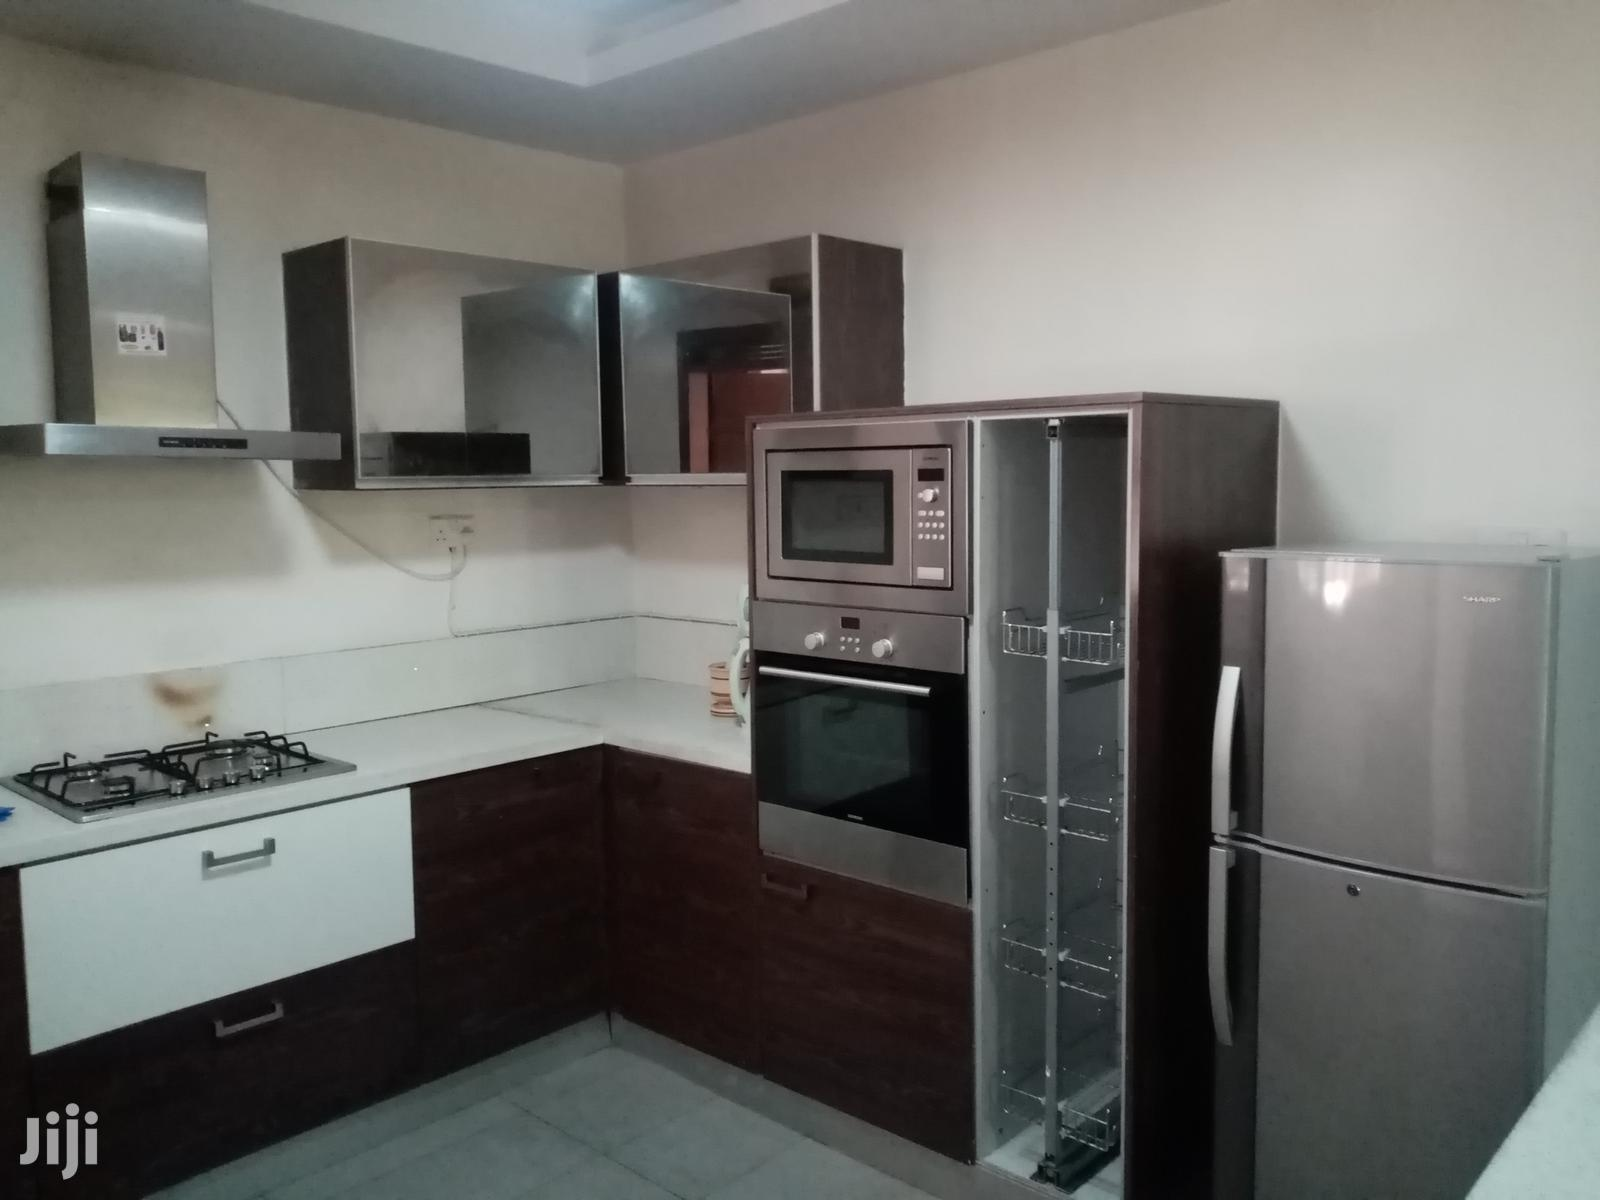 2 Bedroom Furnished Apartment | Houses & Apartments For Rent for sale in Kilimani, Nairobi, Kenya